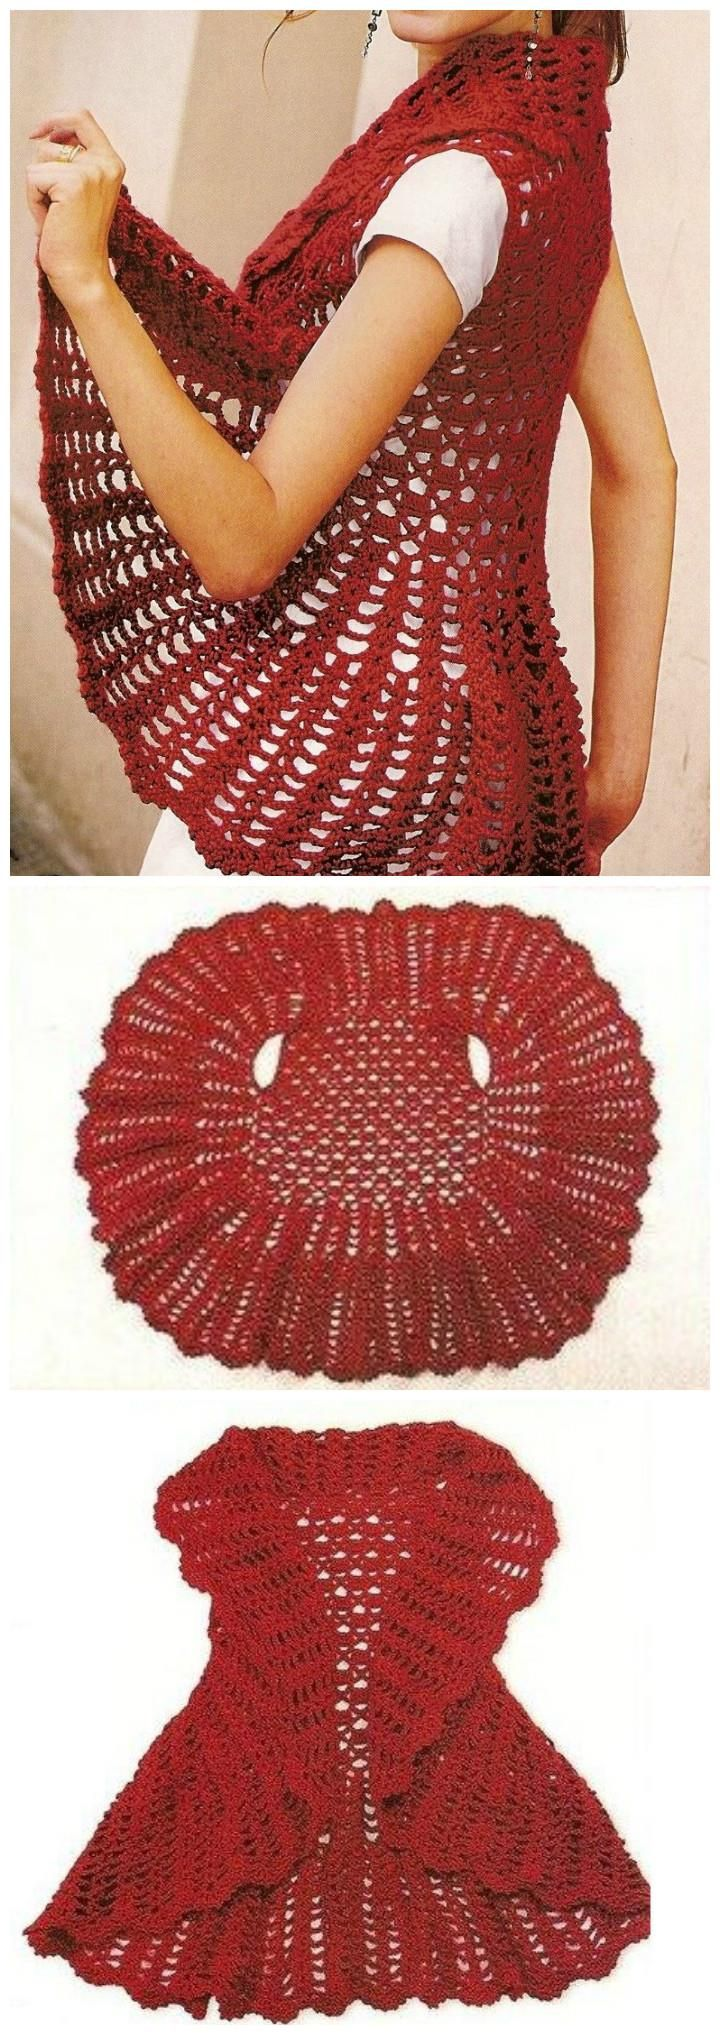 bd86904cebab4 Crochet Red Circle Vest - 12 Free Crochet Patterns for Circular Vest Jacket